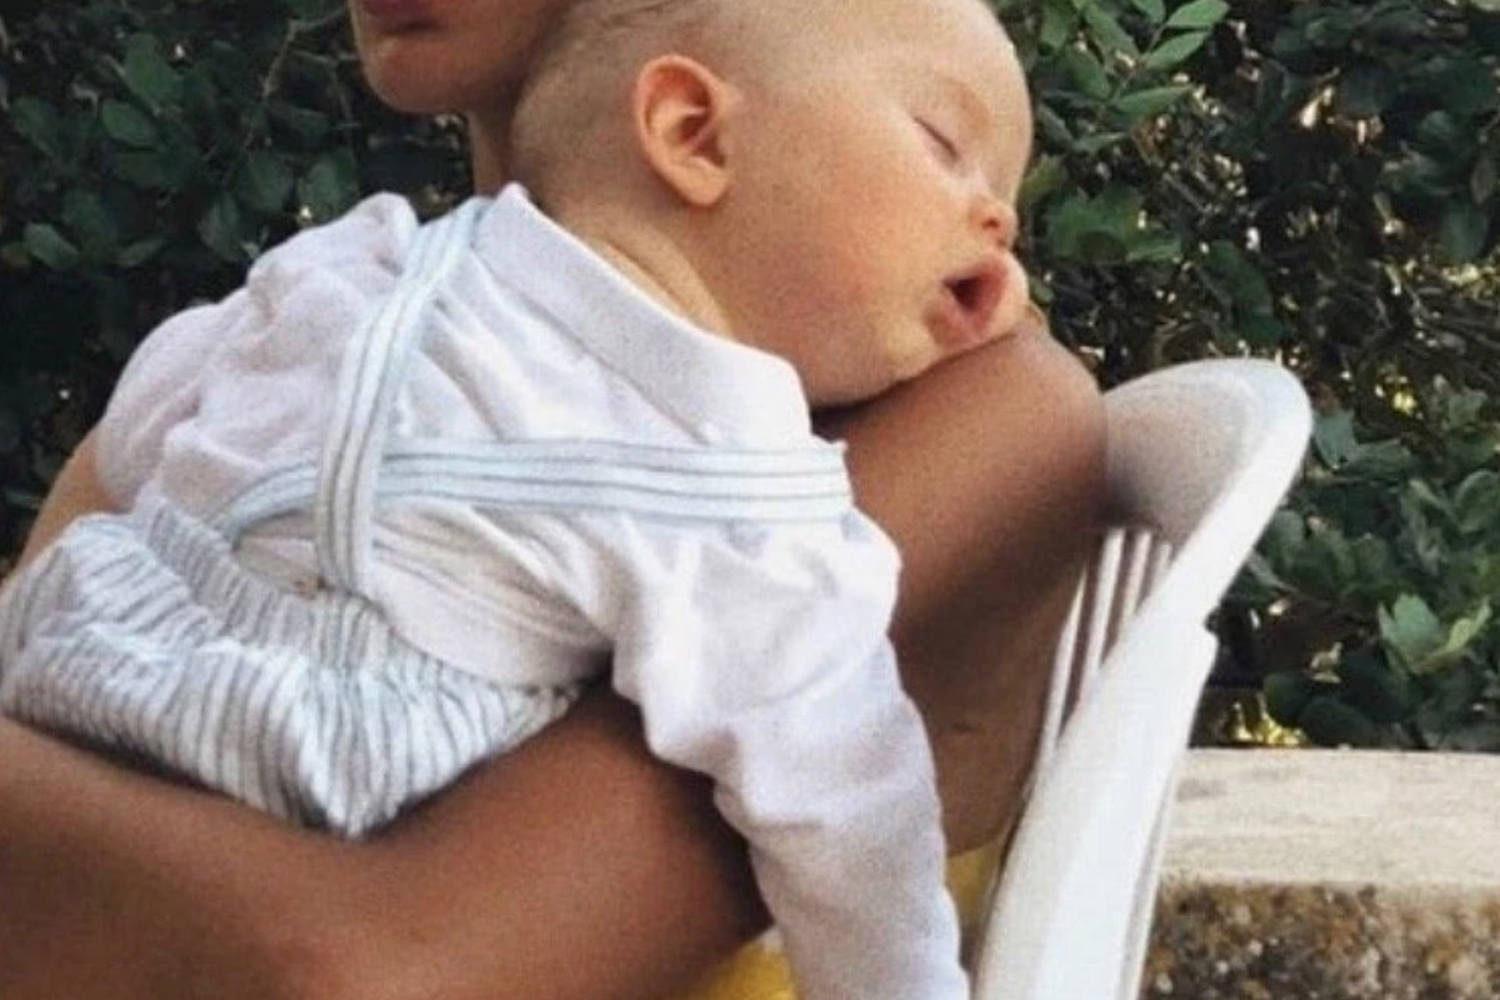 Remodelista Gift Guide 2020: For New Babies/Parents